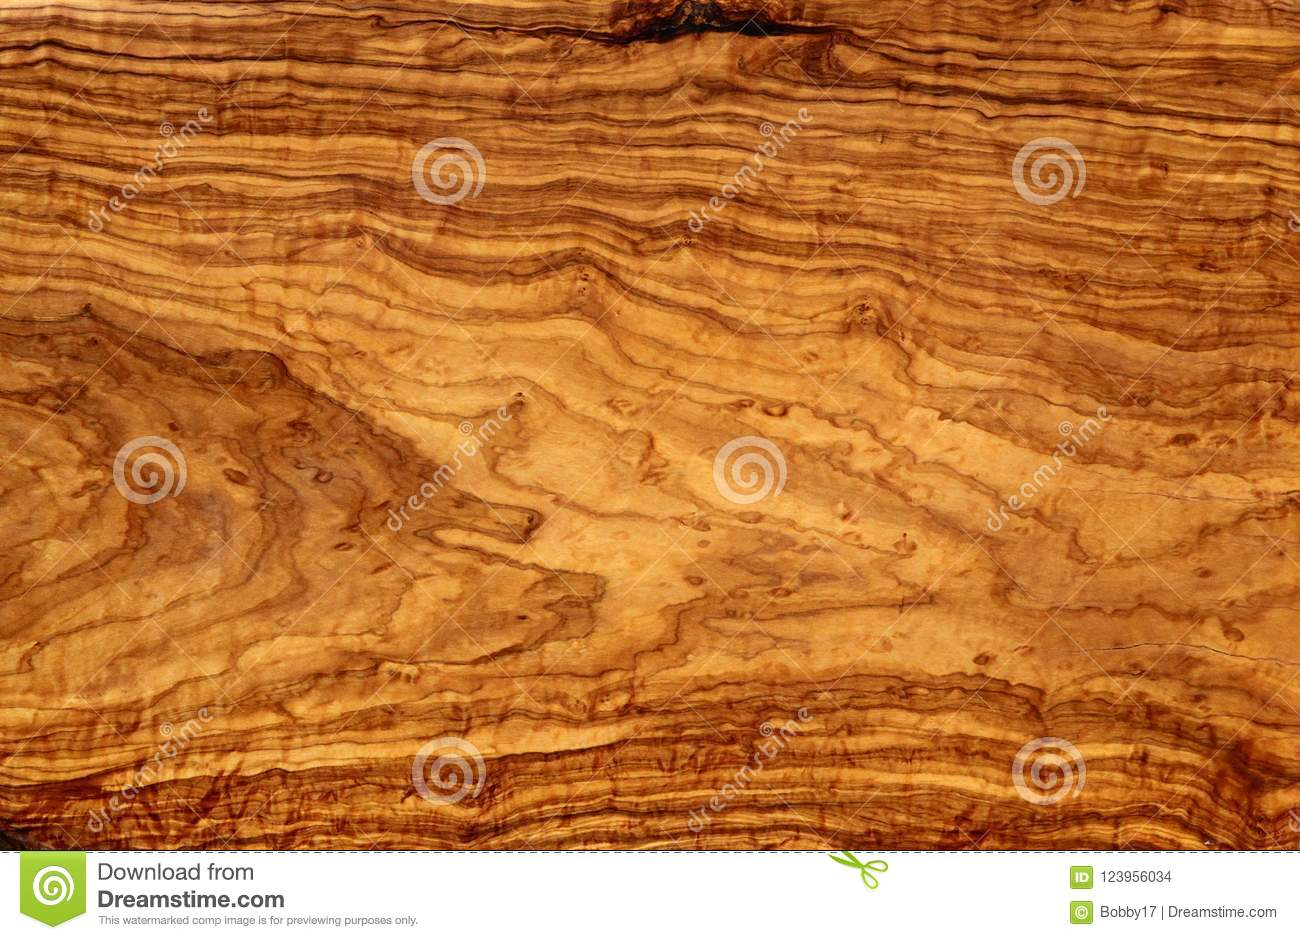 Vintage Wood Background Texture. Olive Tree. Natural brown barn wood floor / wall texture background pattern.